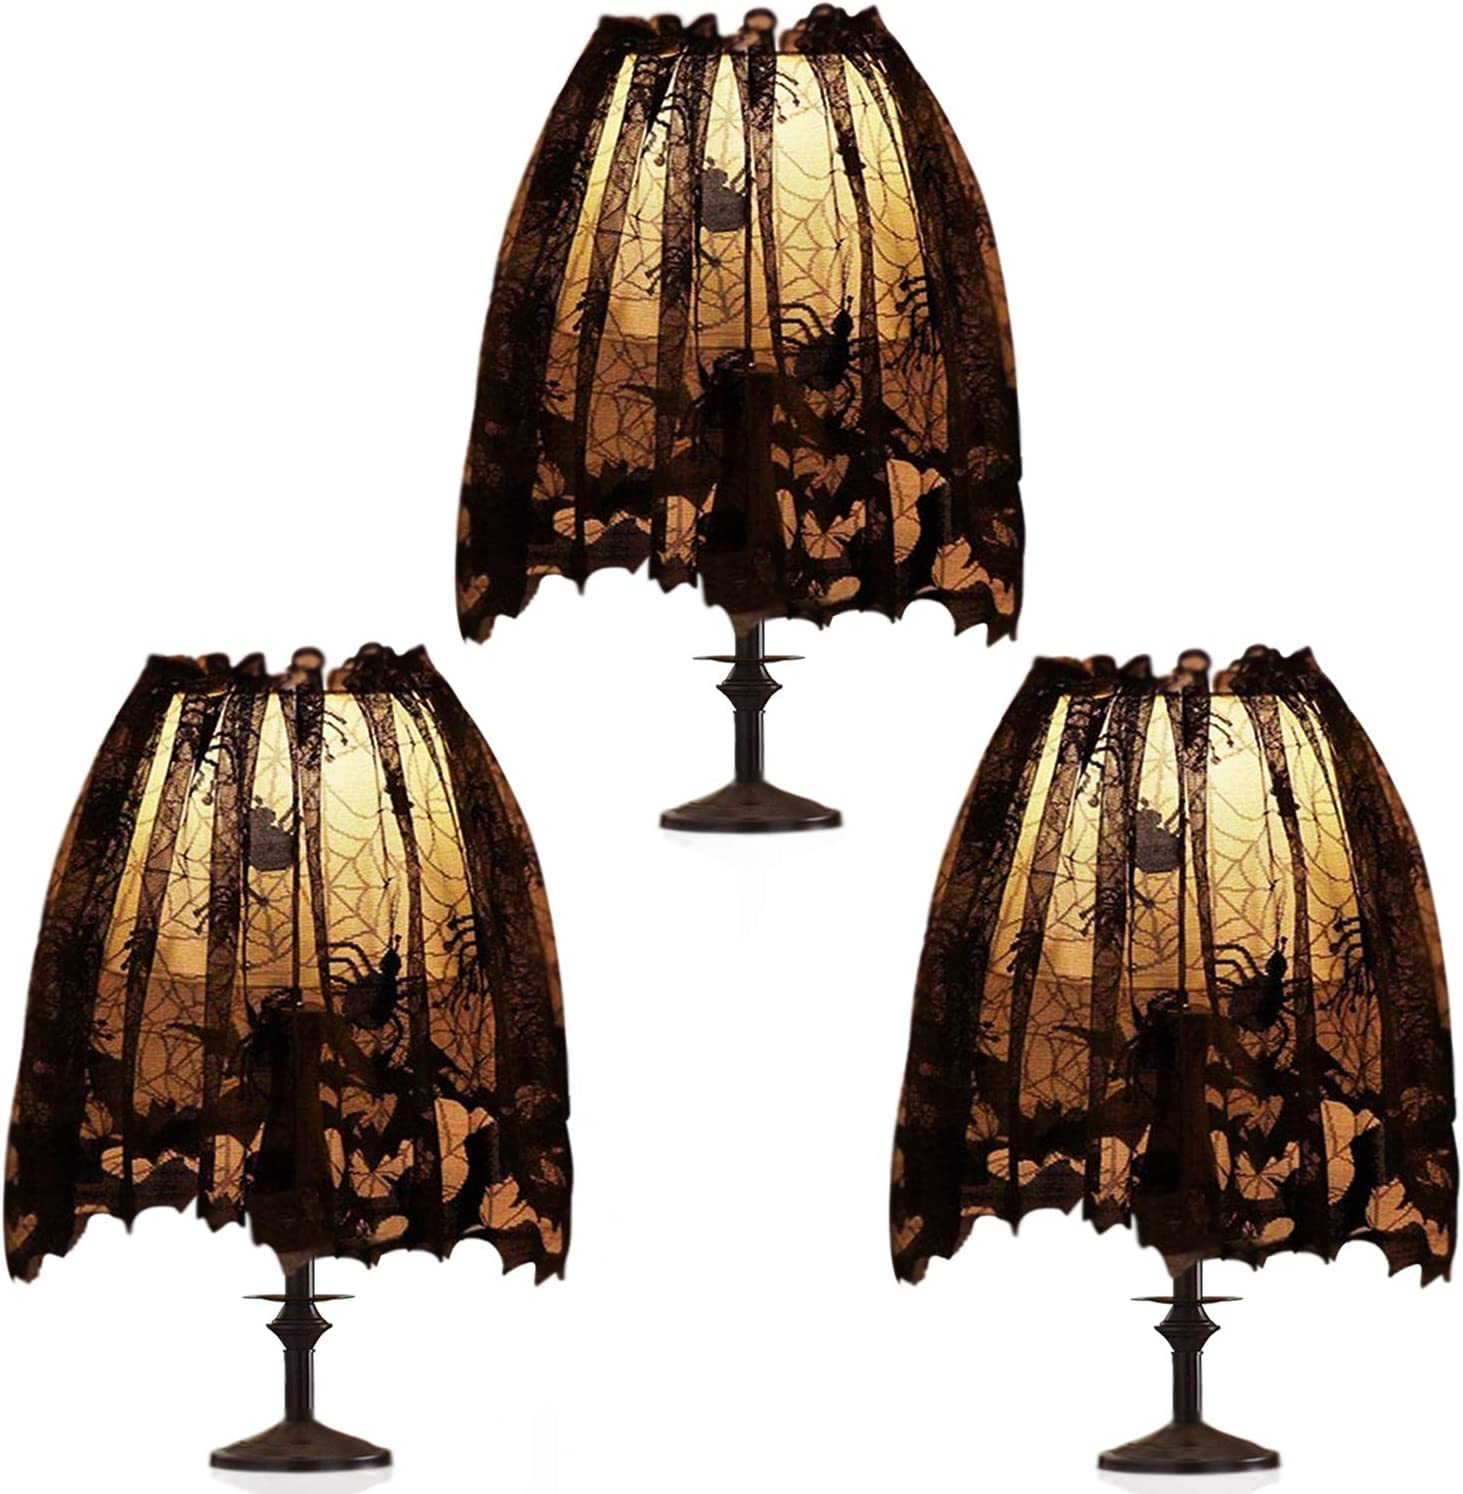 Max 89% OFF 3Pcs Halloween Lamp Shade Cover Ribbon Discount mail order Black Sp Lace Decoration